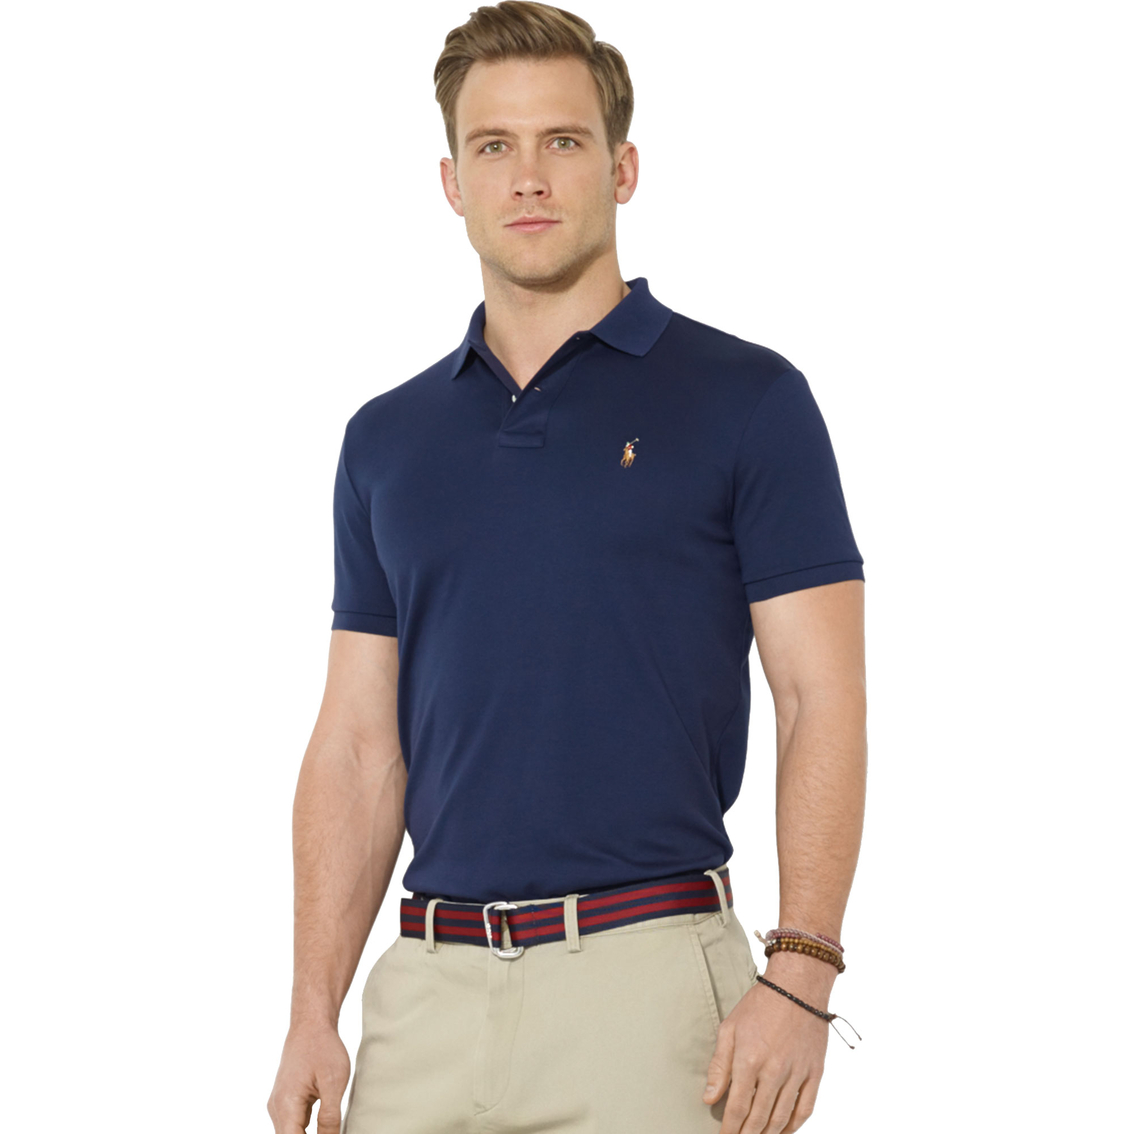 Polo Ralph Lauren Interlock Polo Shirt   Polo Ralph Lauren   Shop ... e1d86afc739